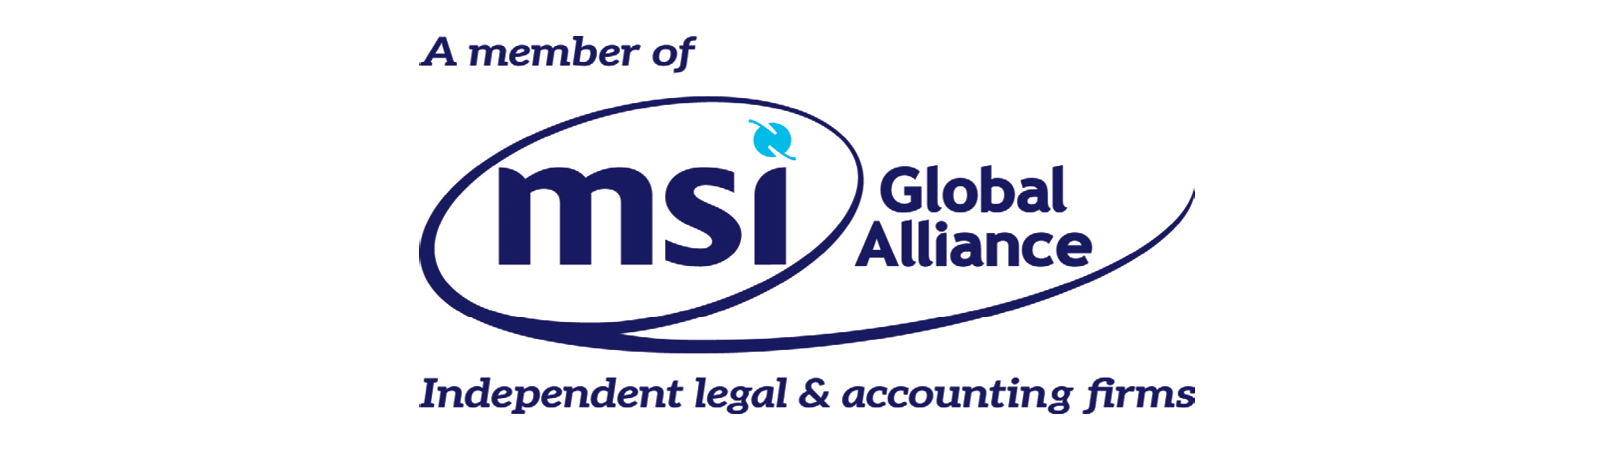 Vandeventer Black Expands Legal Network with MSI Global Alliance Partnership